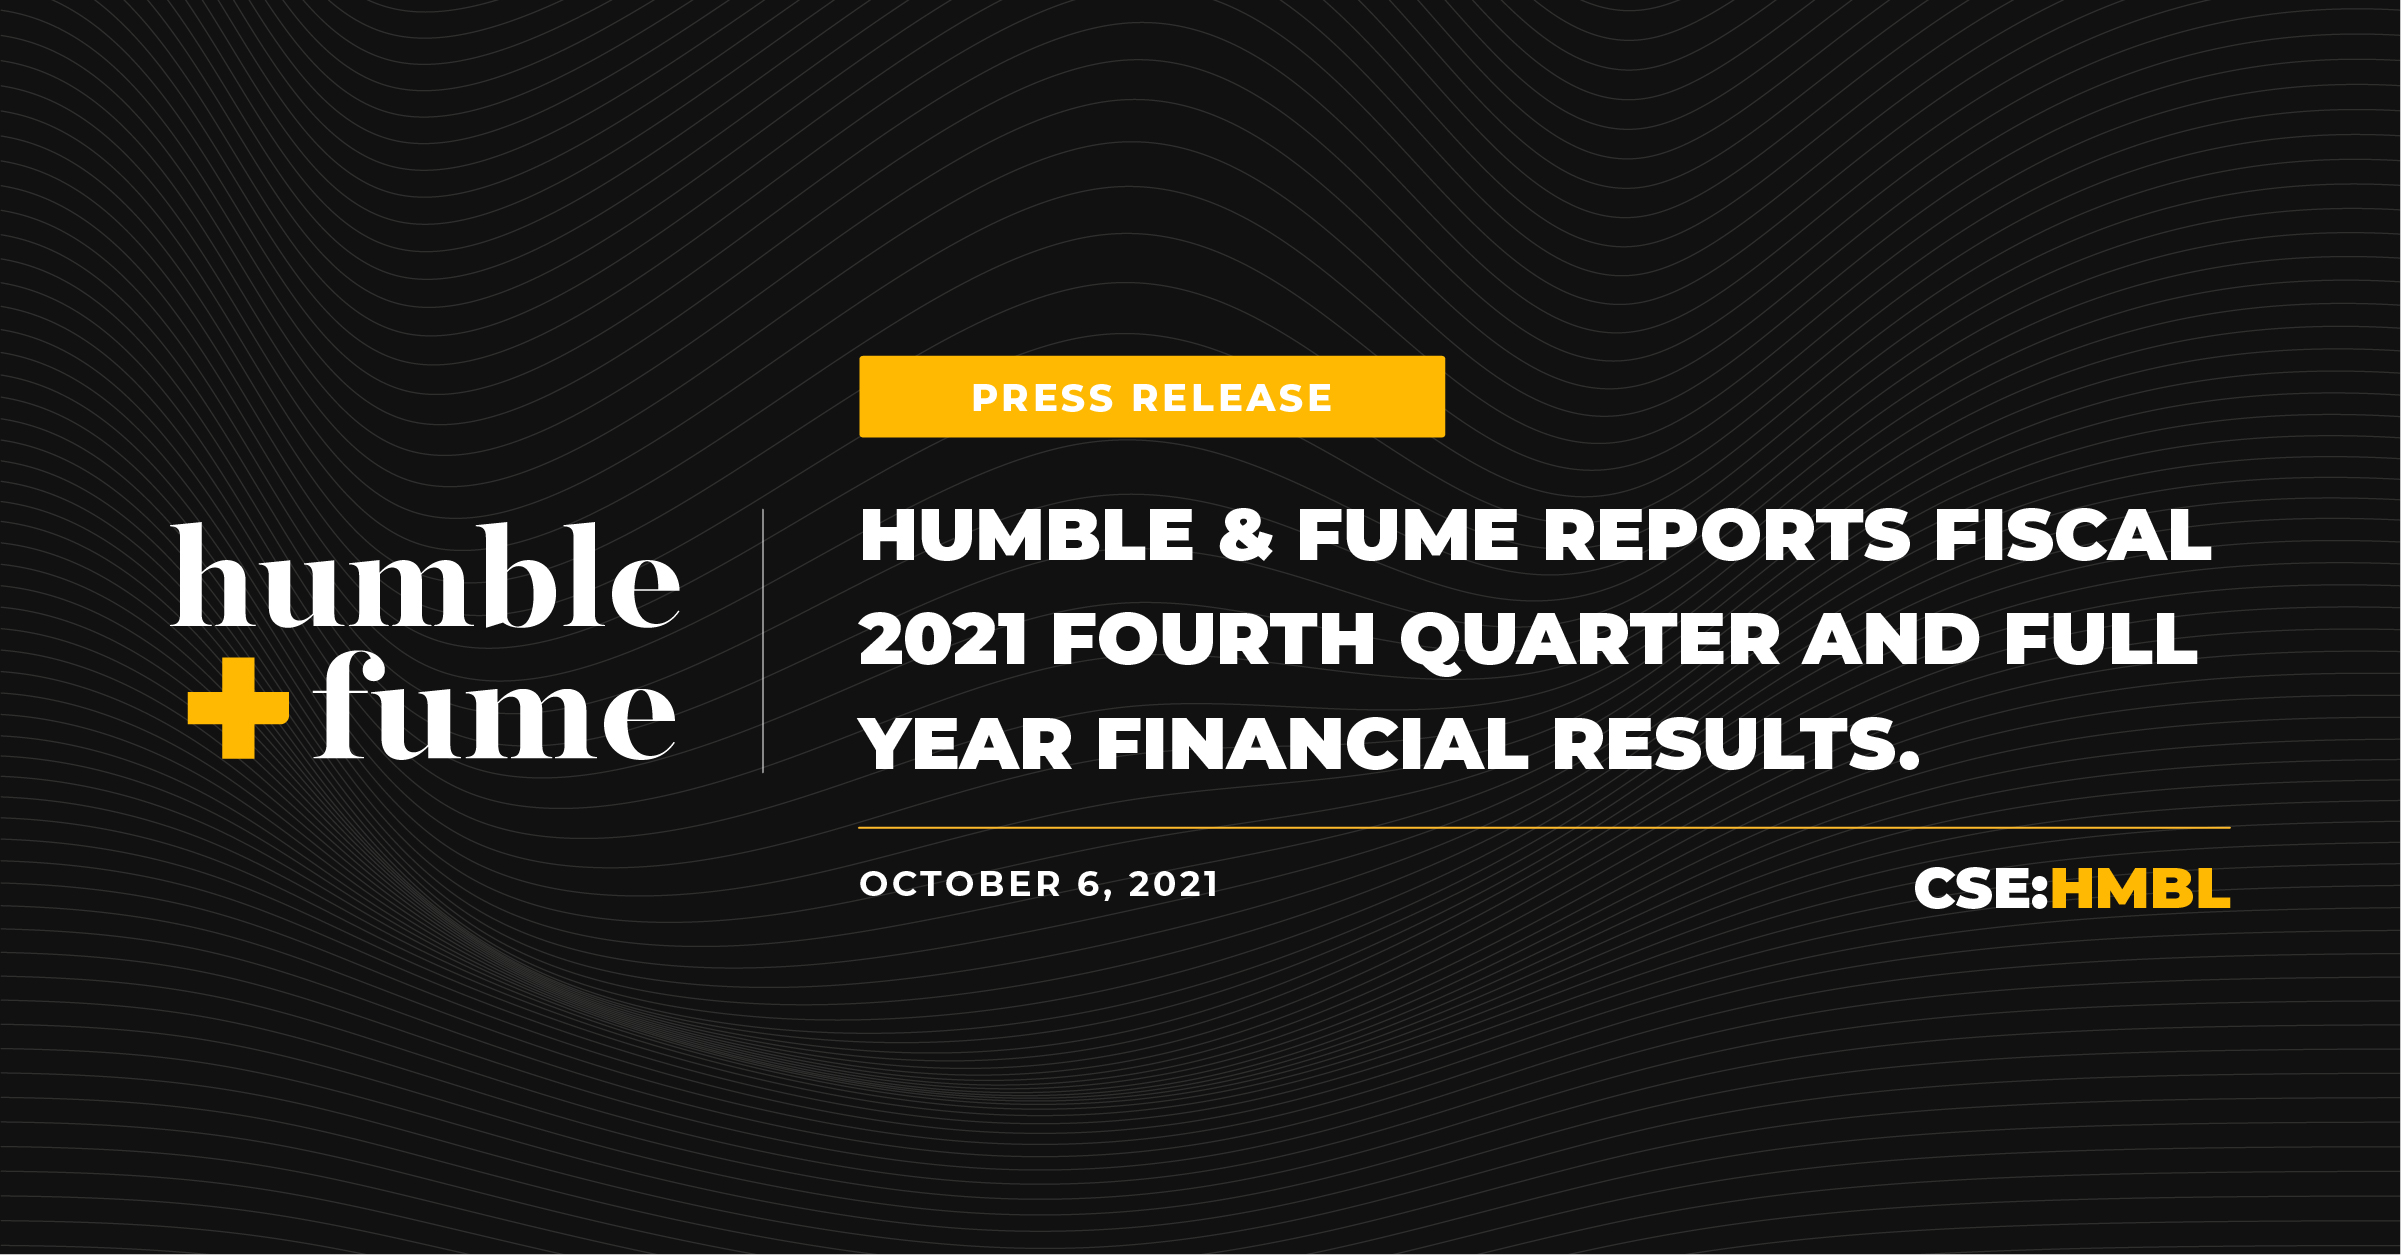 Humble & Fume, Inc. Reports Fiscal 2021 Fourth Quarter and Full Year Financial Results